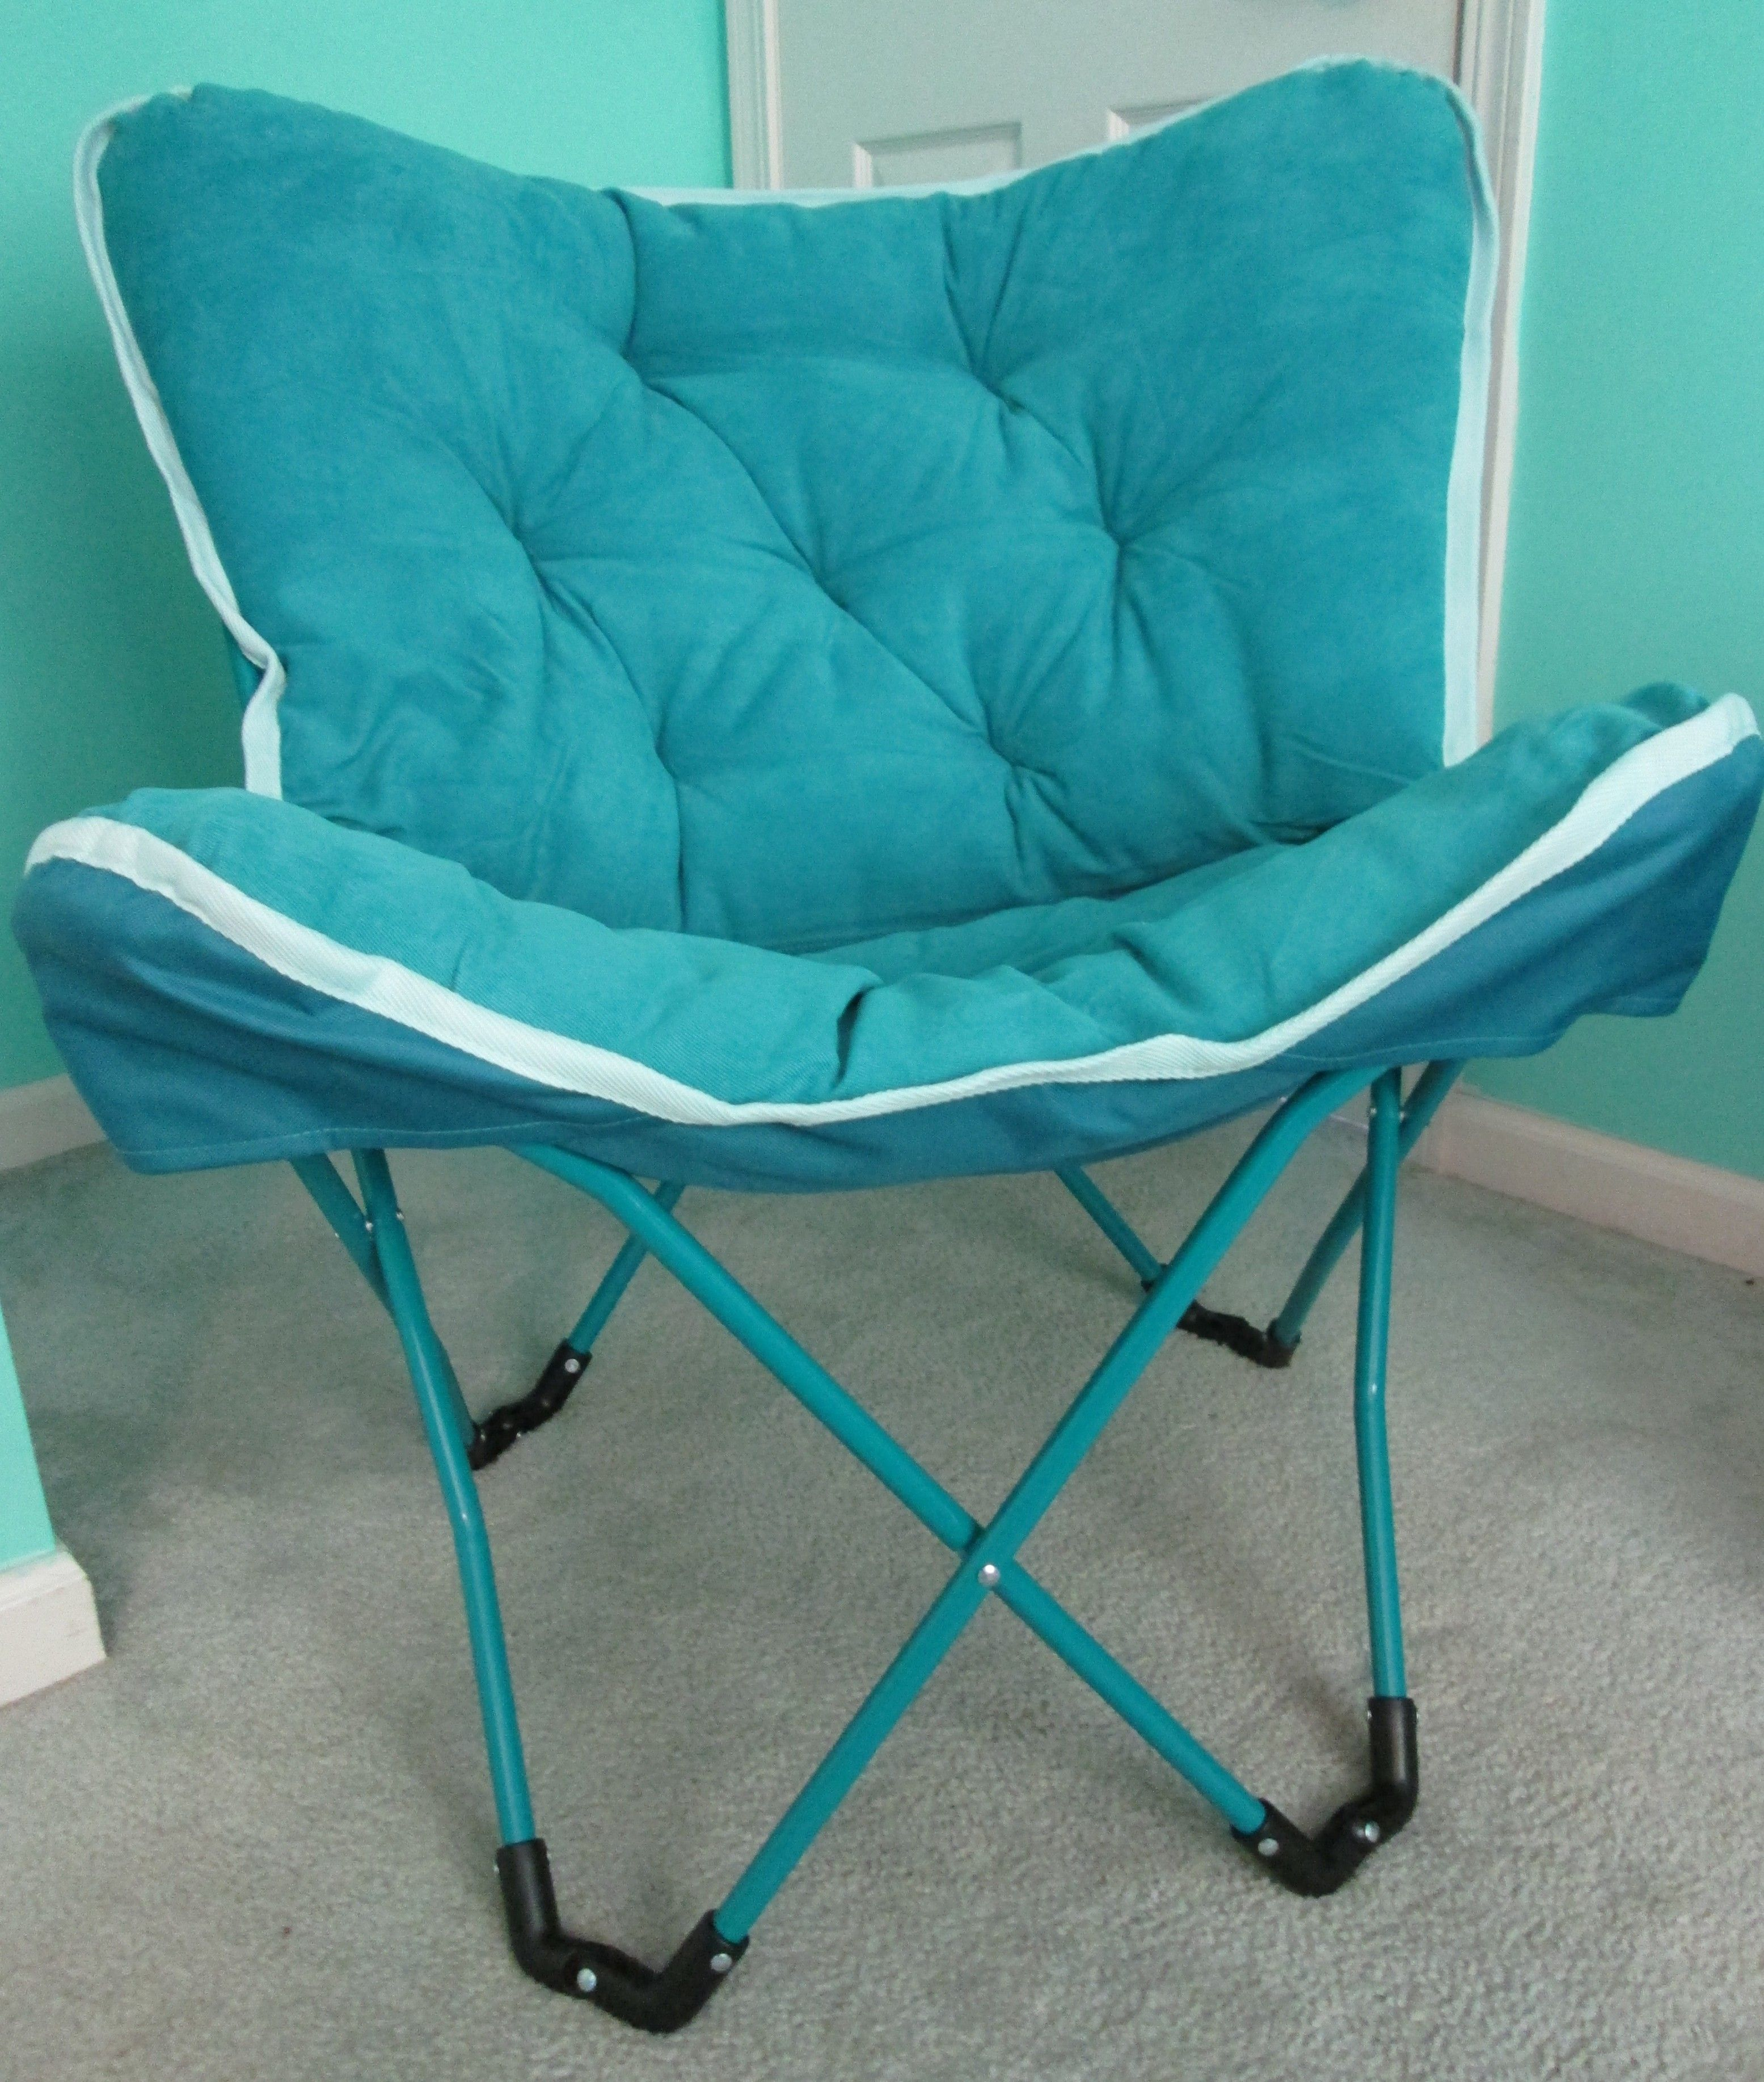 Charmant New Comfy Dorm Chairs   Comfy Chairs For College Dorm, Comfy Chairs For Dorm  Rooms